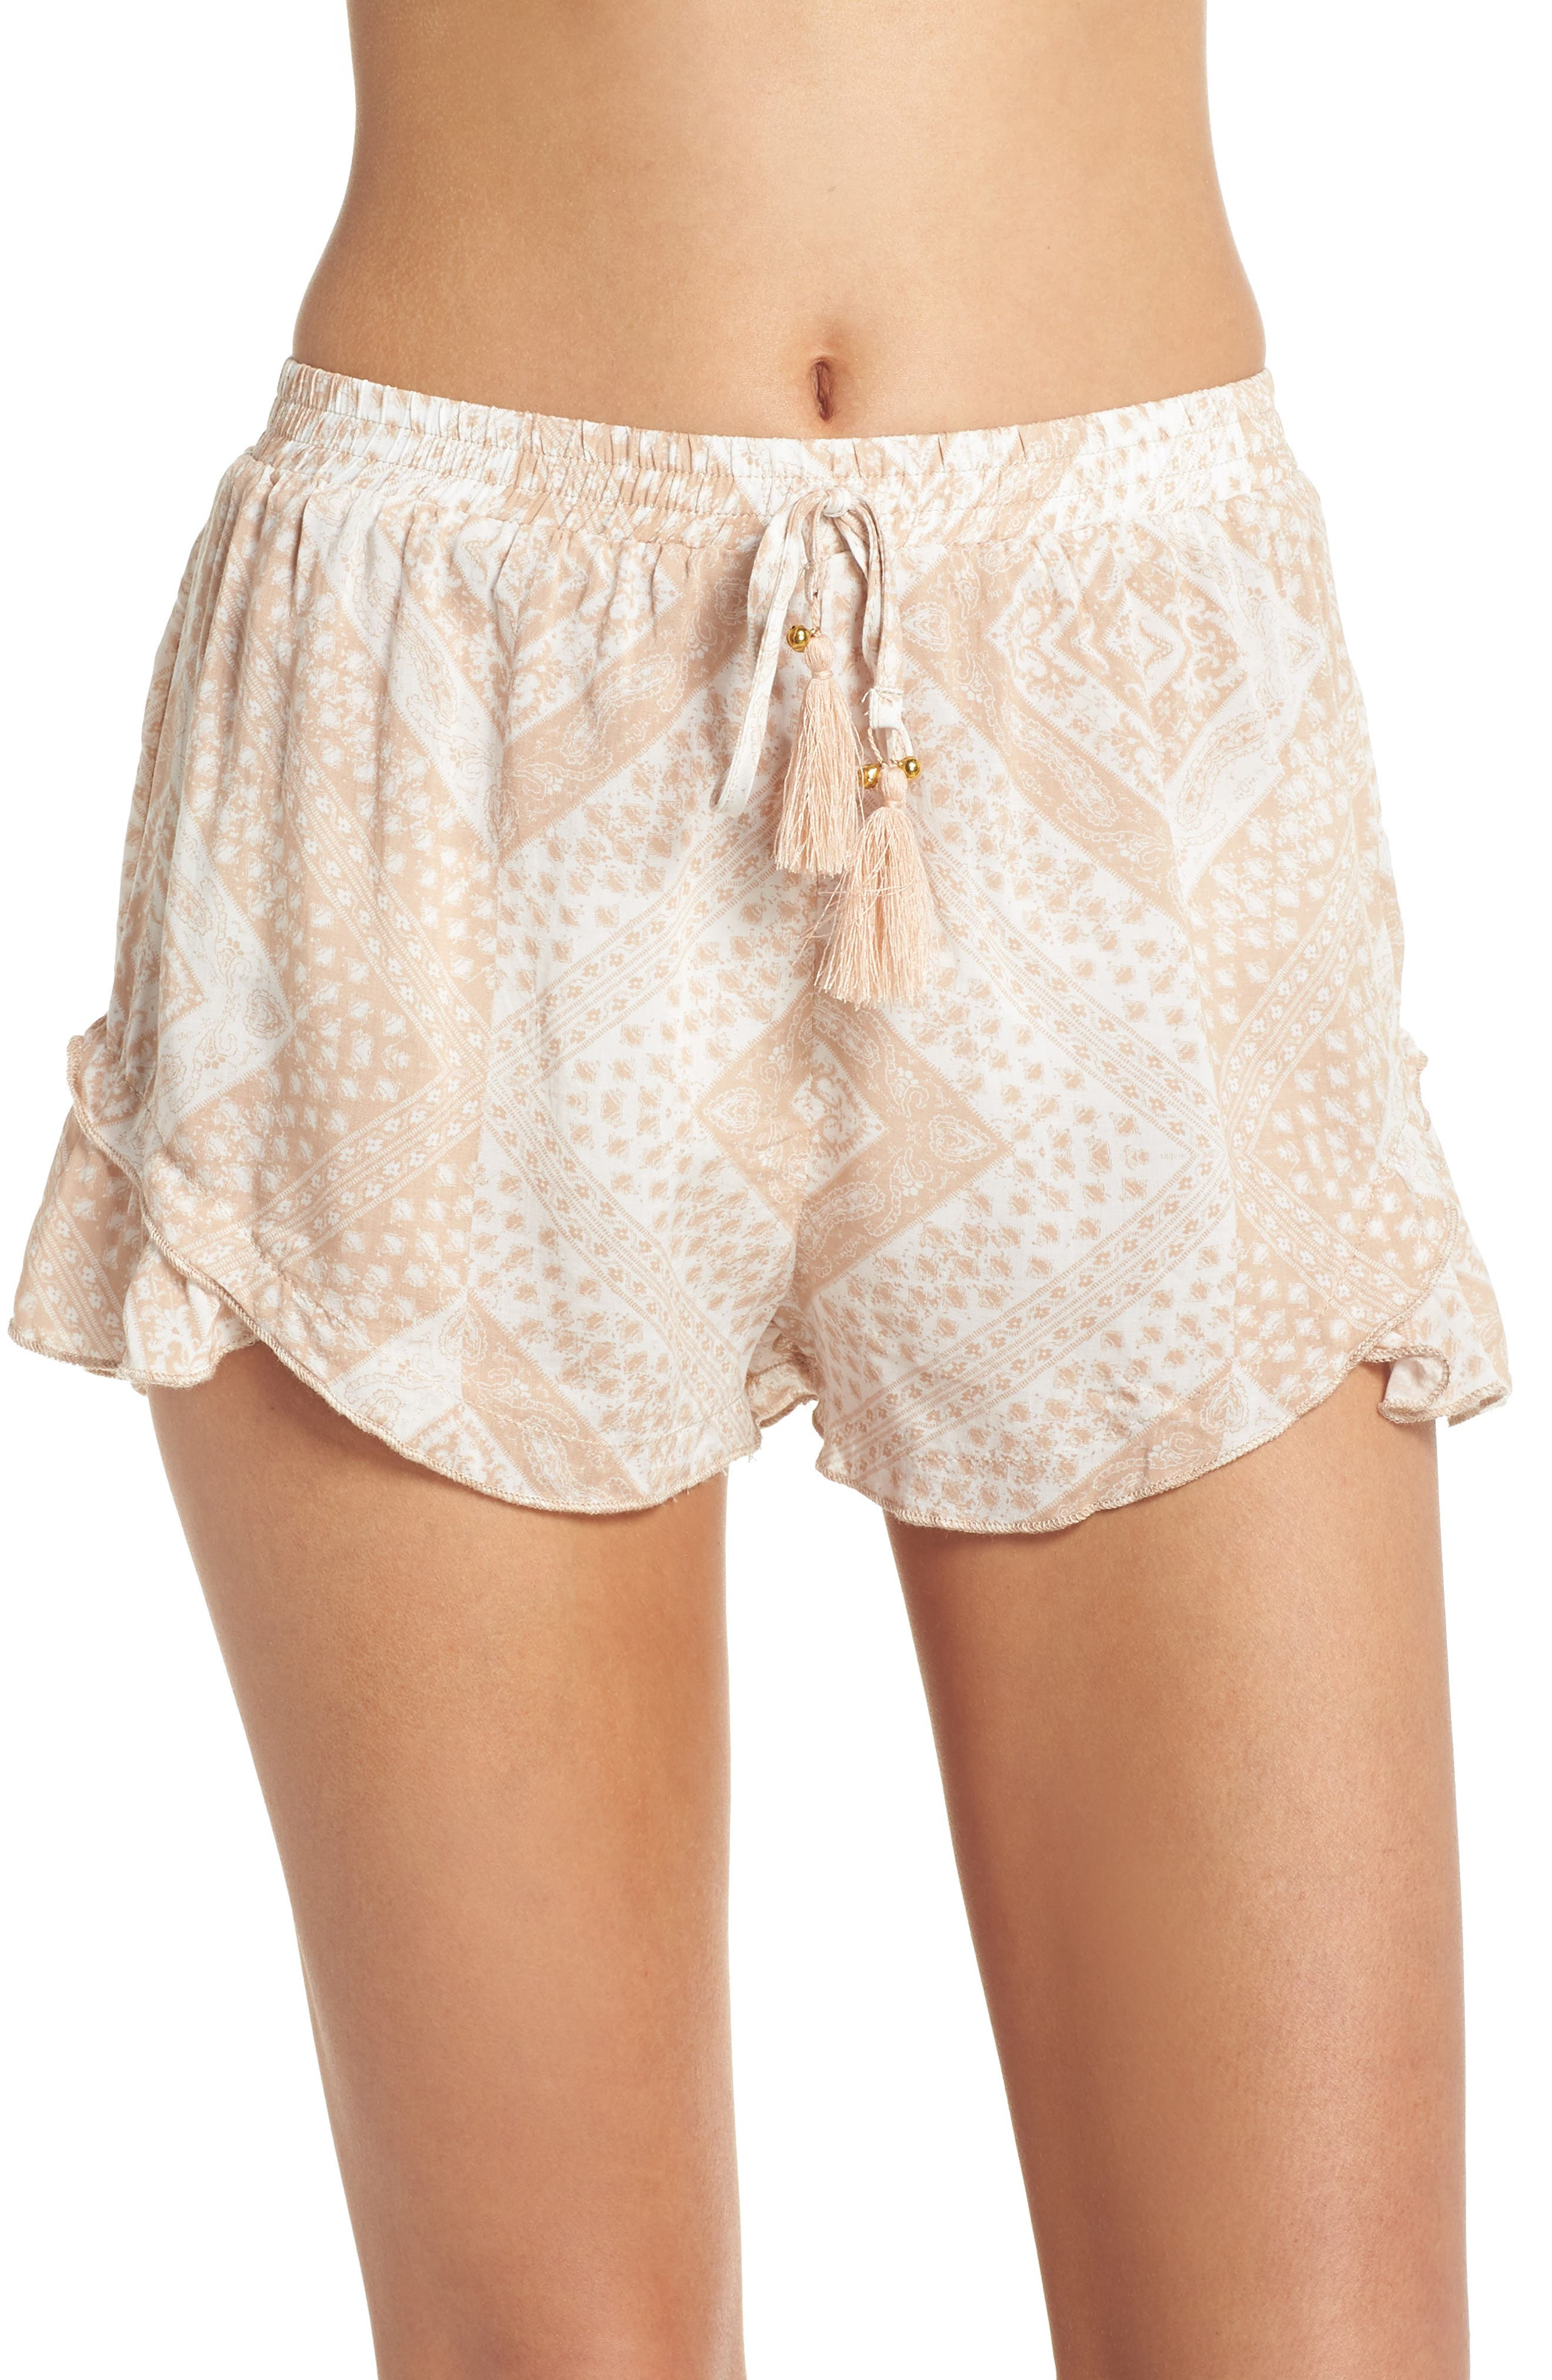 Tassel Trim Cover-Up Shorts,                             Main thumbnail 1, color,                             TAN SCARF